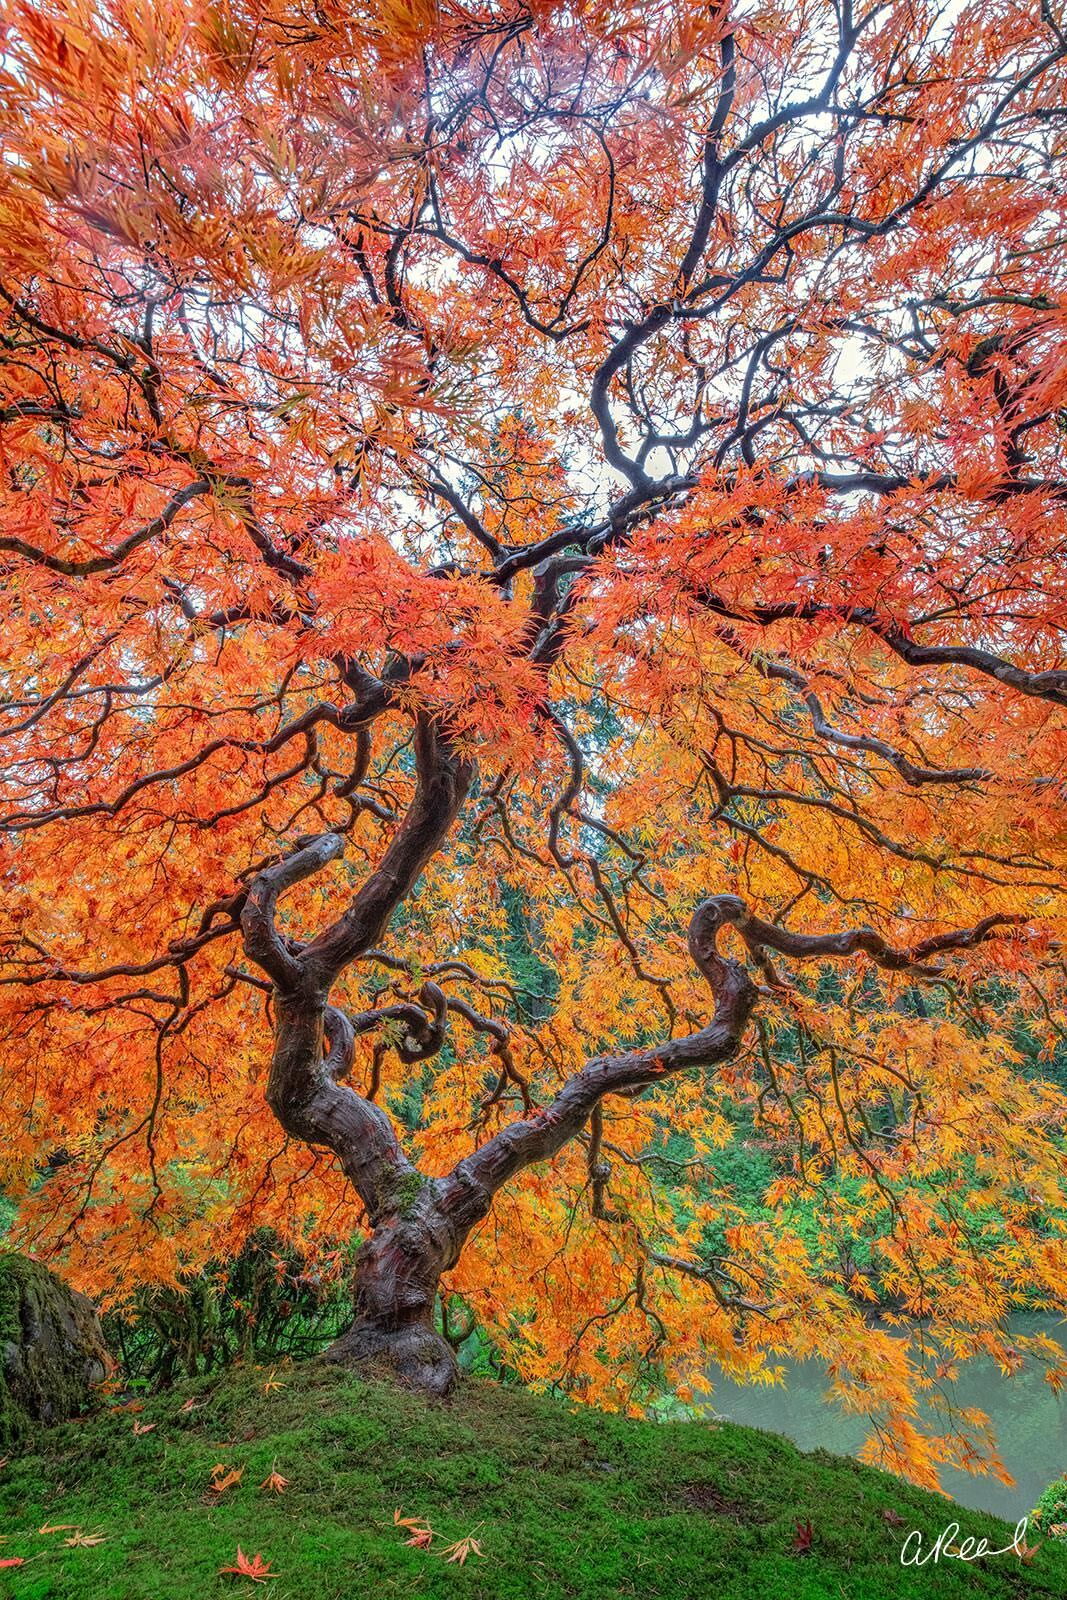 A vertical photograph of a red maple tree with twisting branches and a mossy trunk.